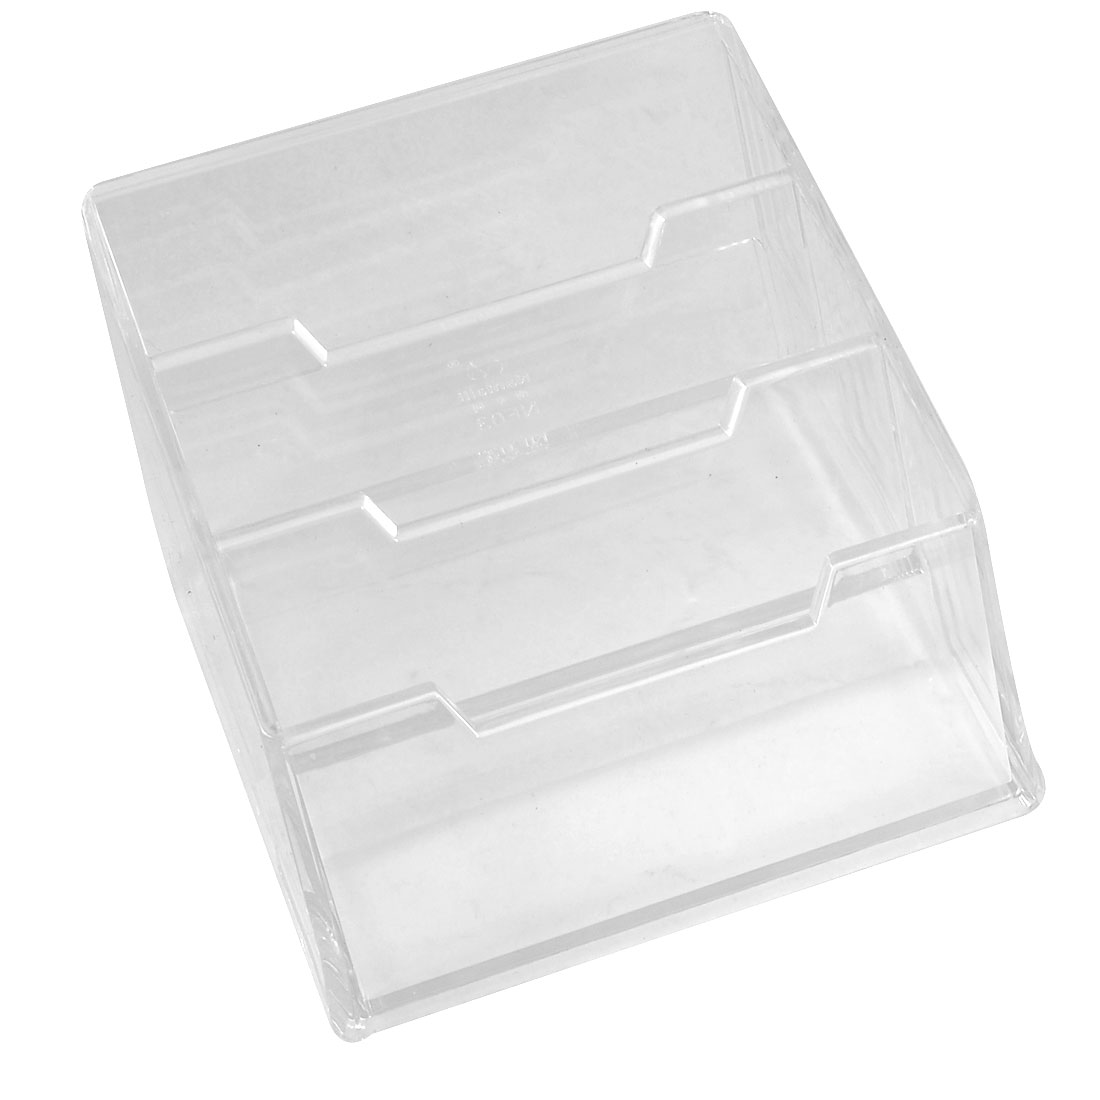 3-tier Design Clear Plastic Name Business Credit Card Stand Holder Case